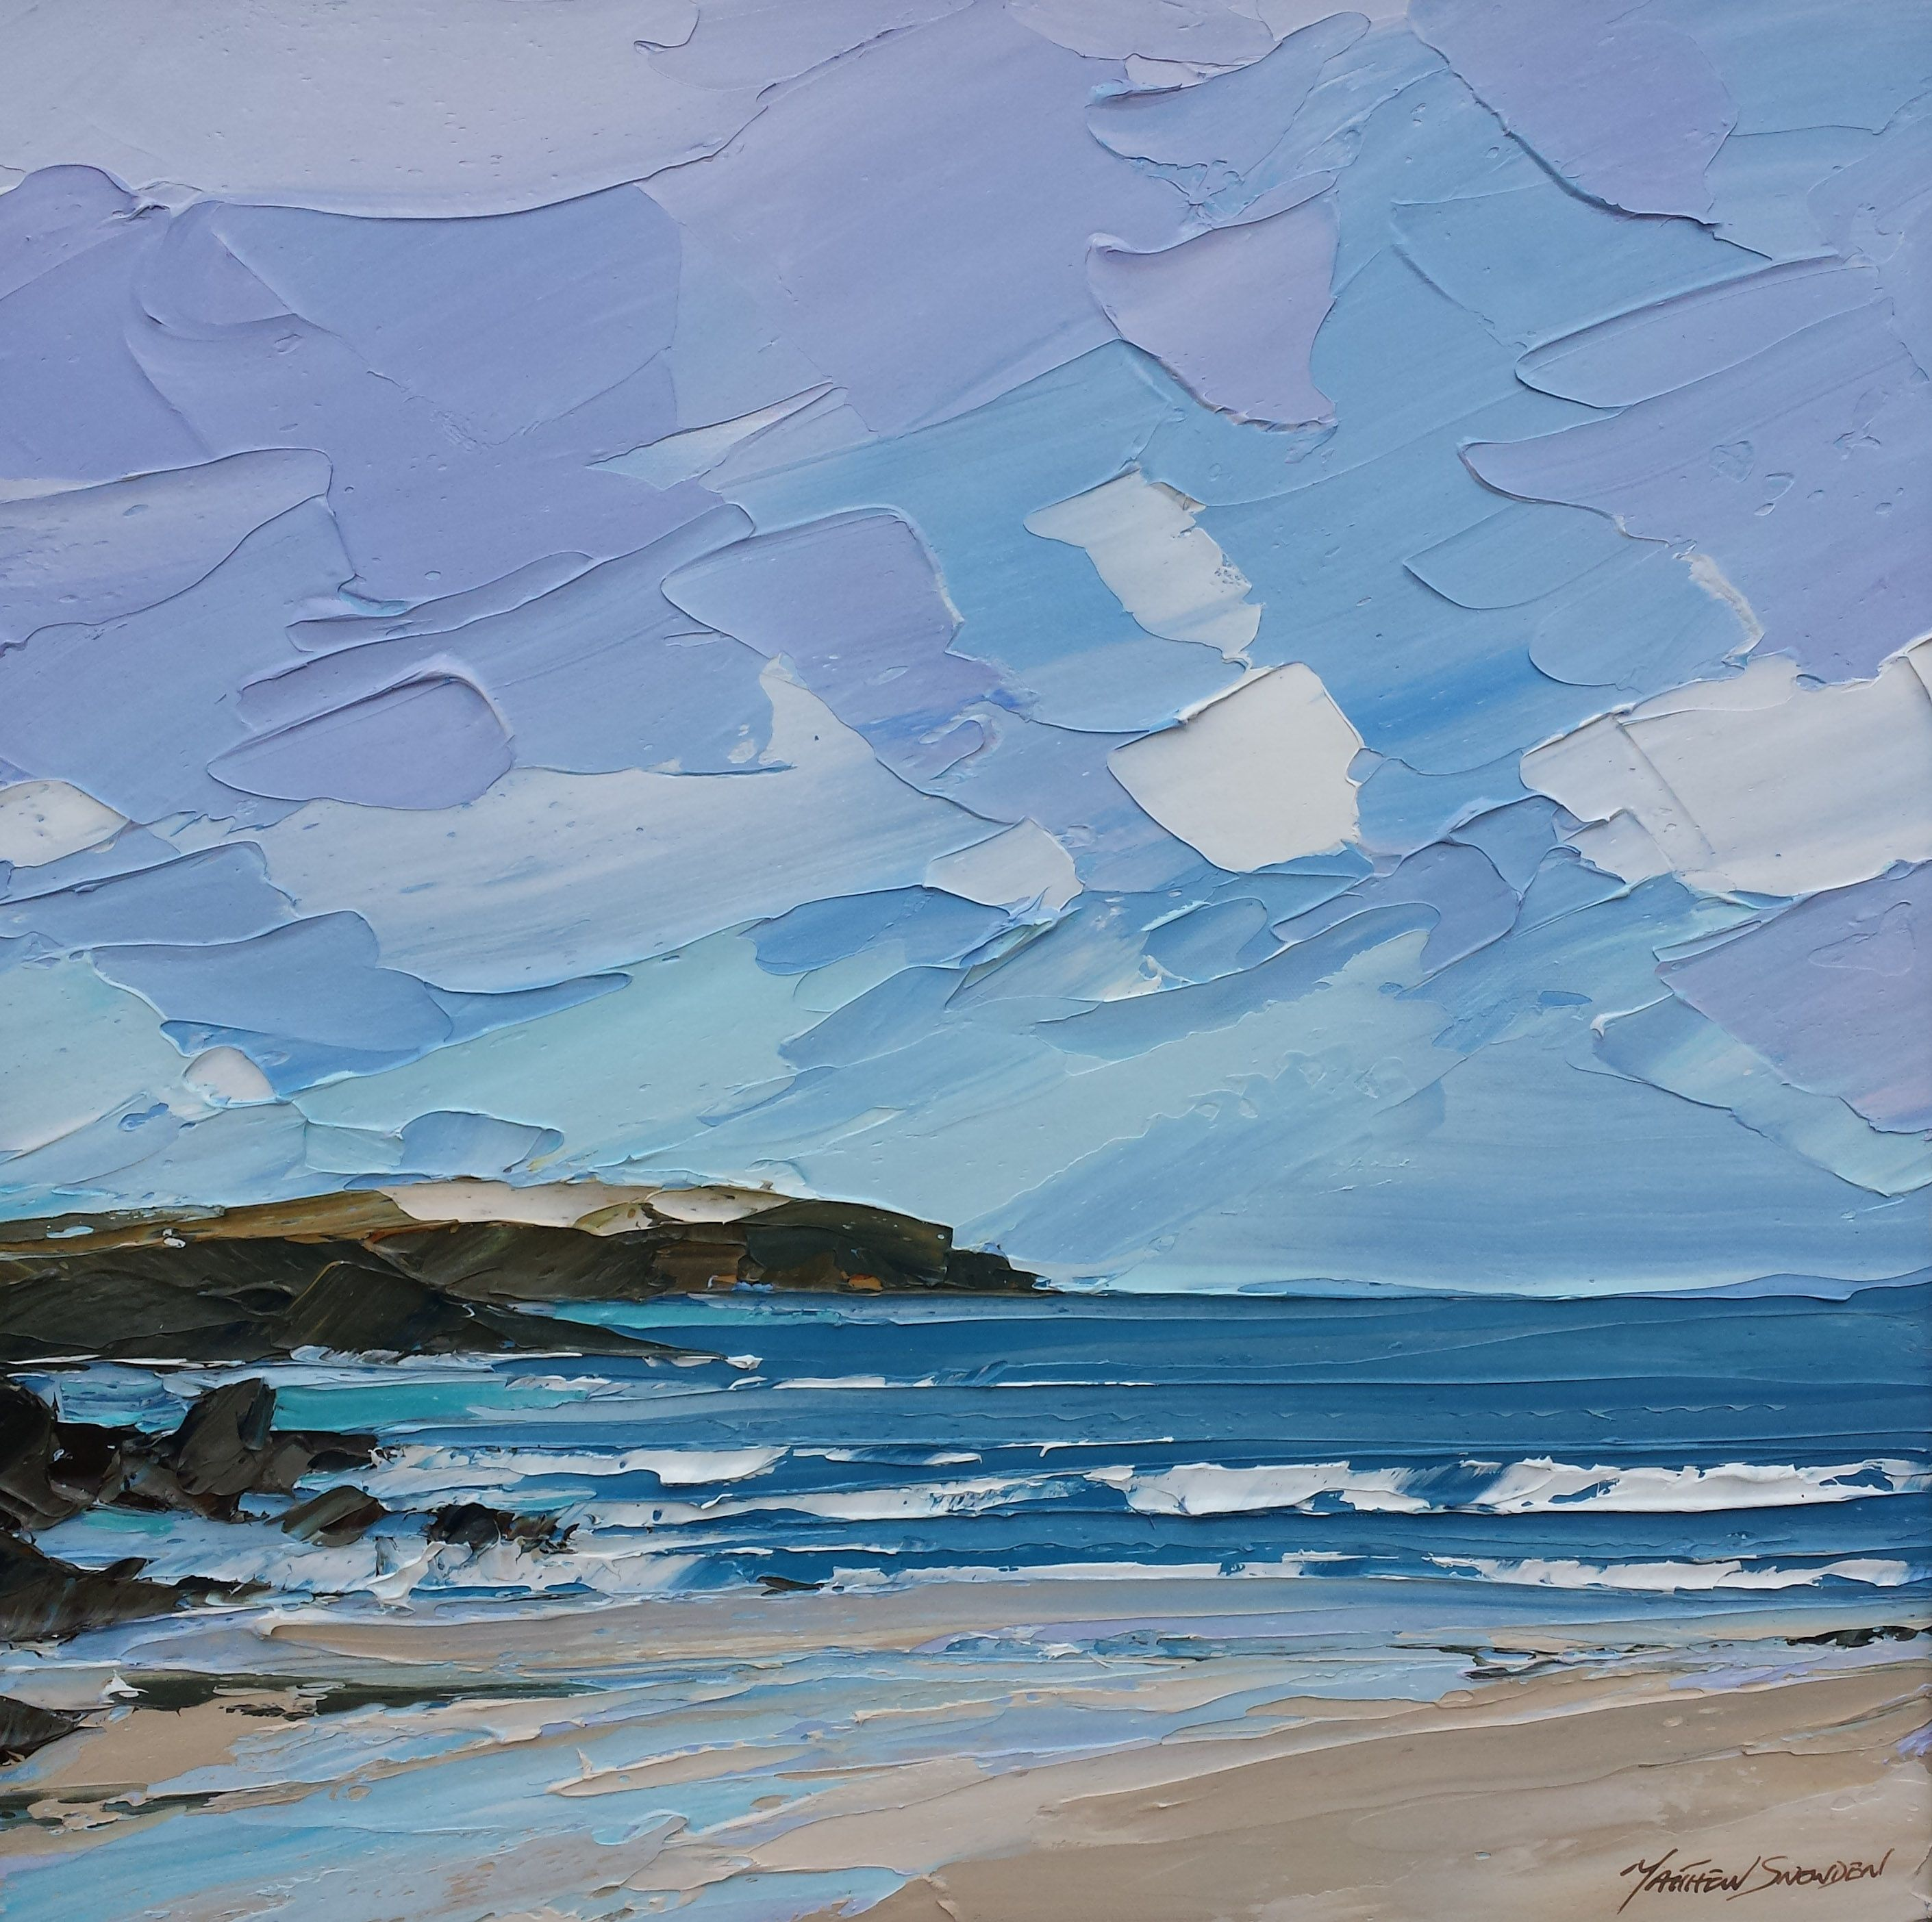 Trevone cornwall 60x60cm matthew snowden carve with for How to paint with a palette knife with acrylics